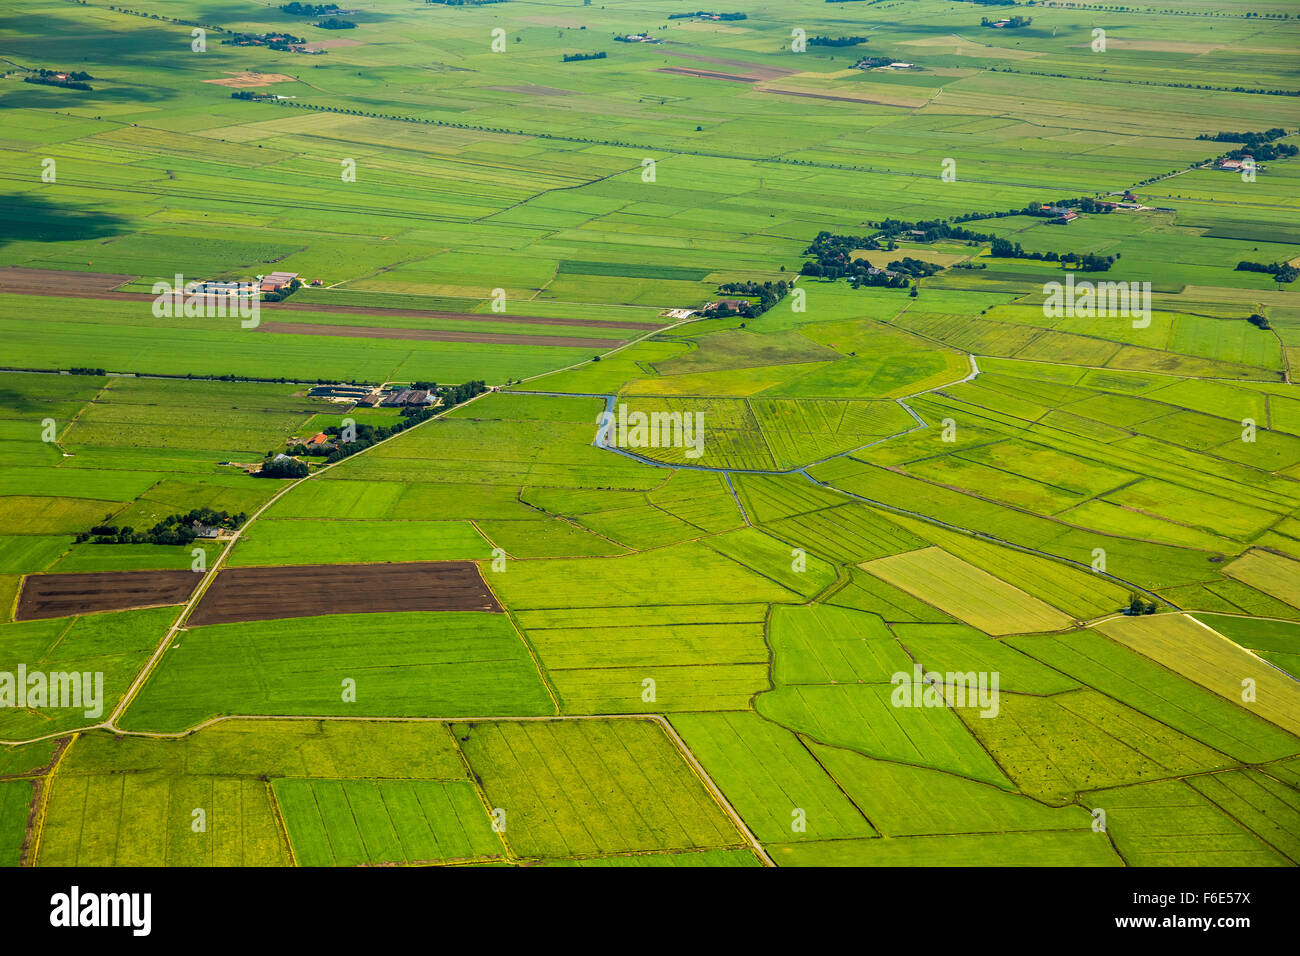 Fields, polder, drainage ditches in marsh areas, green landscape, Bunde, Leer district, Emsland, Lower Saxony, Germany - Stock Image